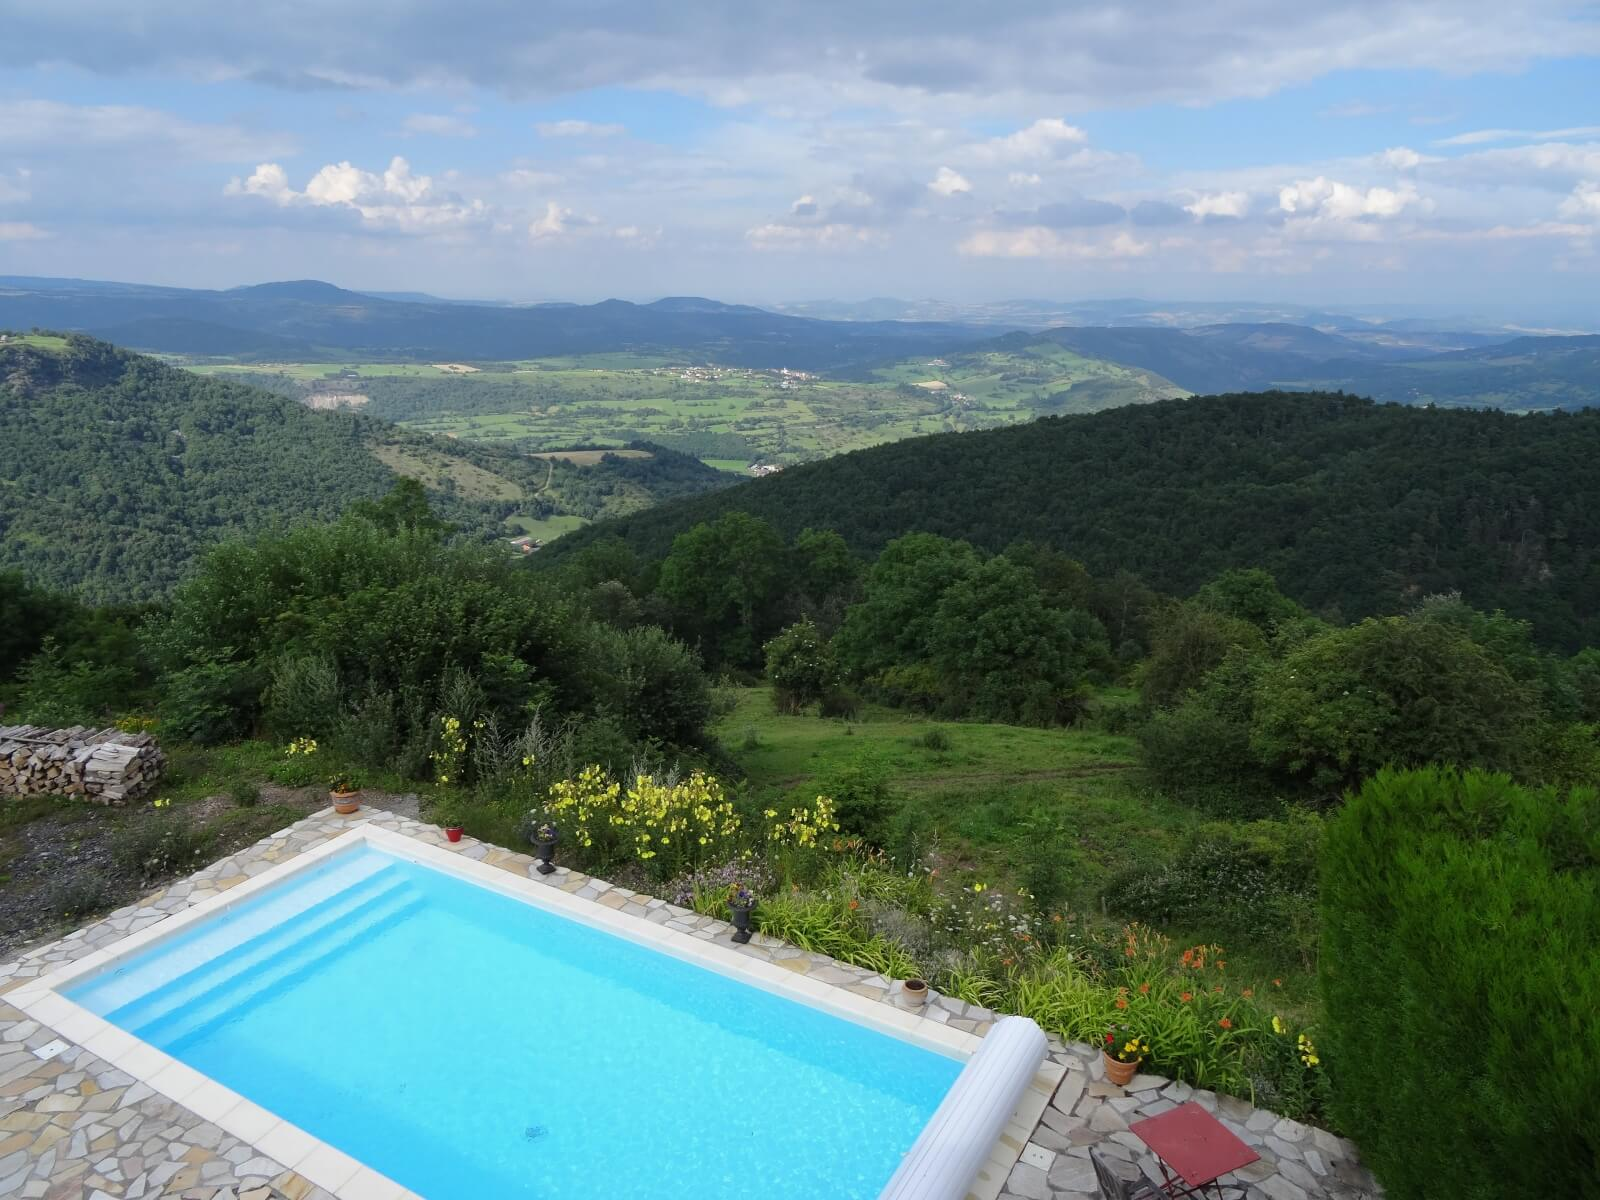 Swimming pool with a view on the Puy de Dôme